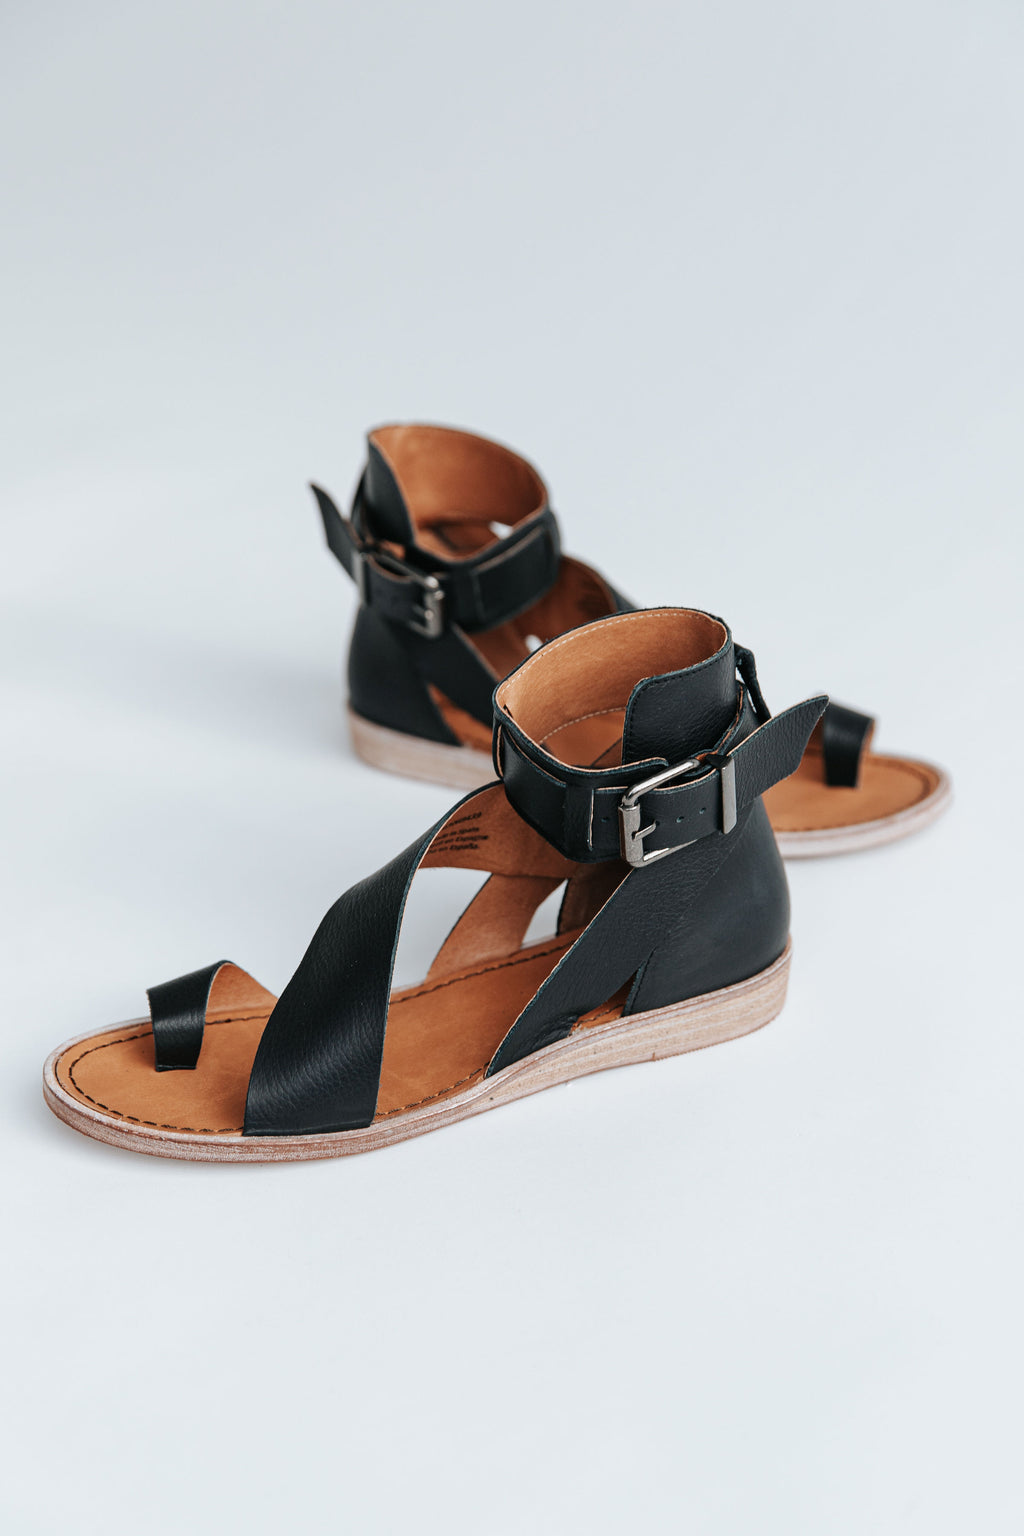 Free People: Vale Boot Sandal in Black, studio shoot; side view